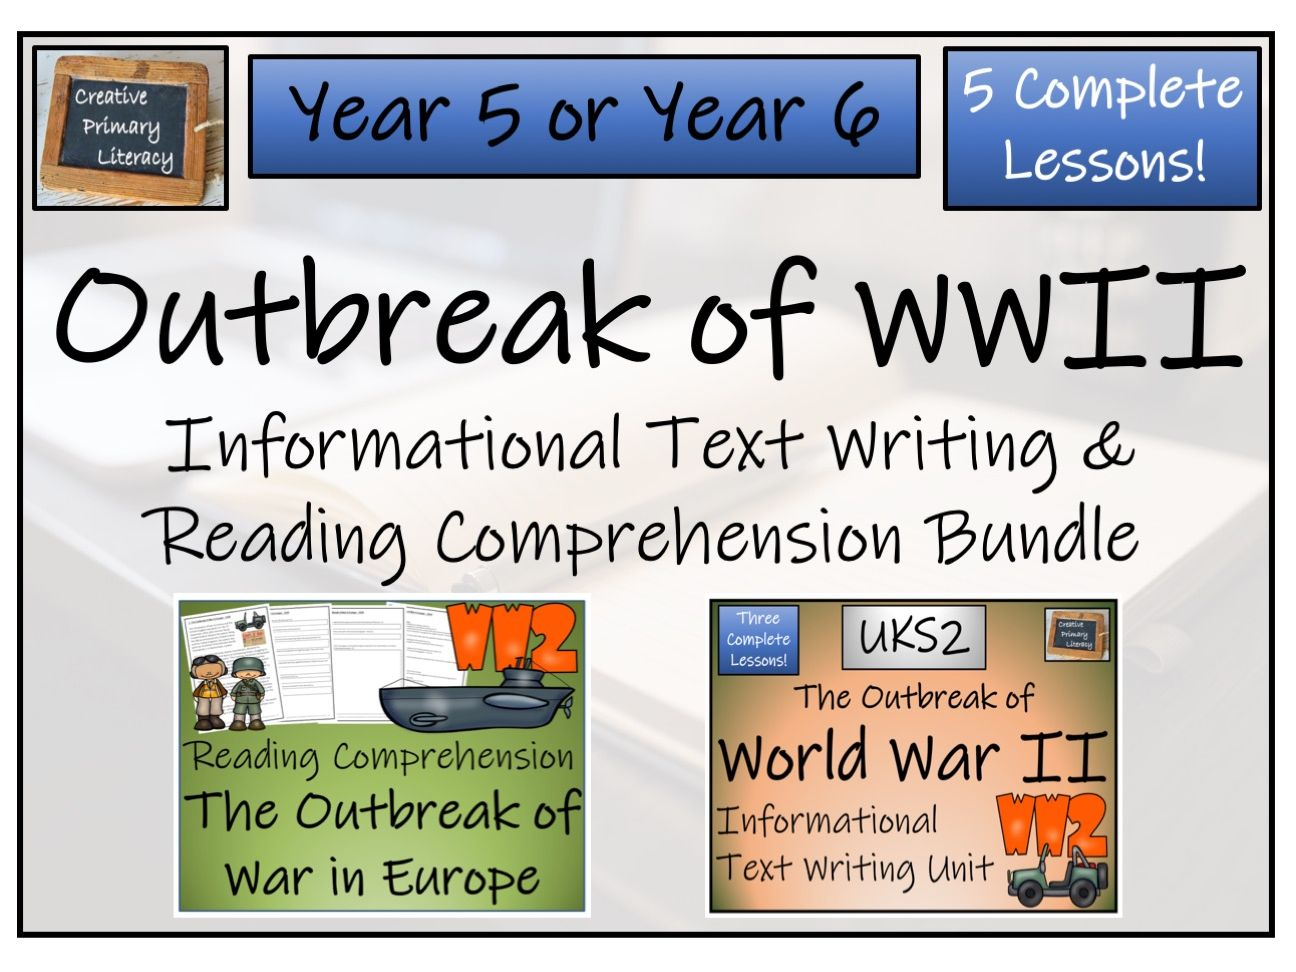 UKS2 Outbreak of World War II Reading Comprehension & Informational Text Writing Unit Bundle